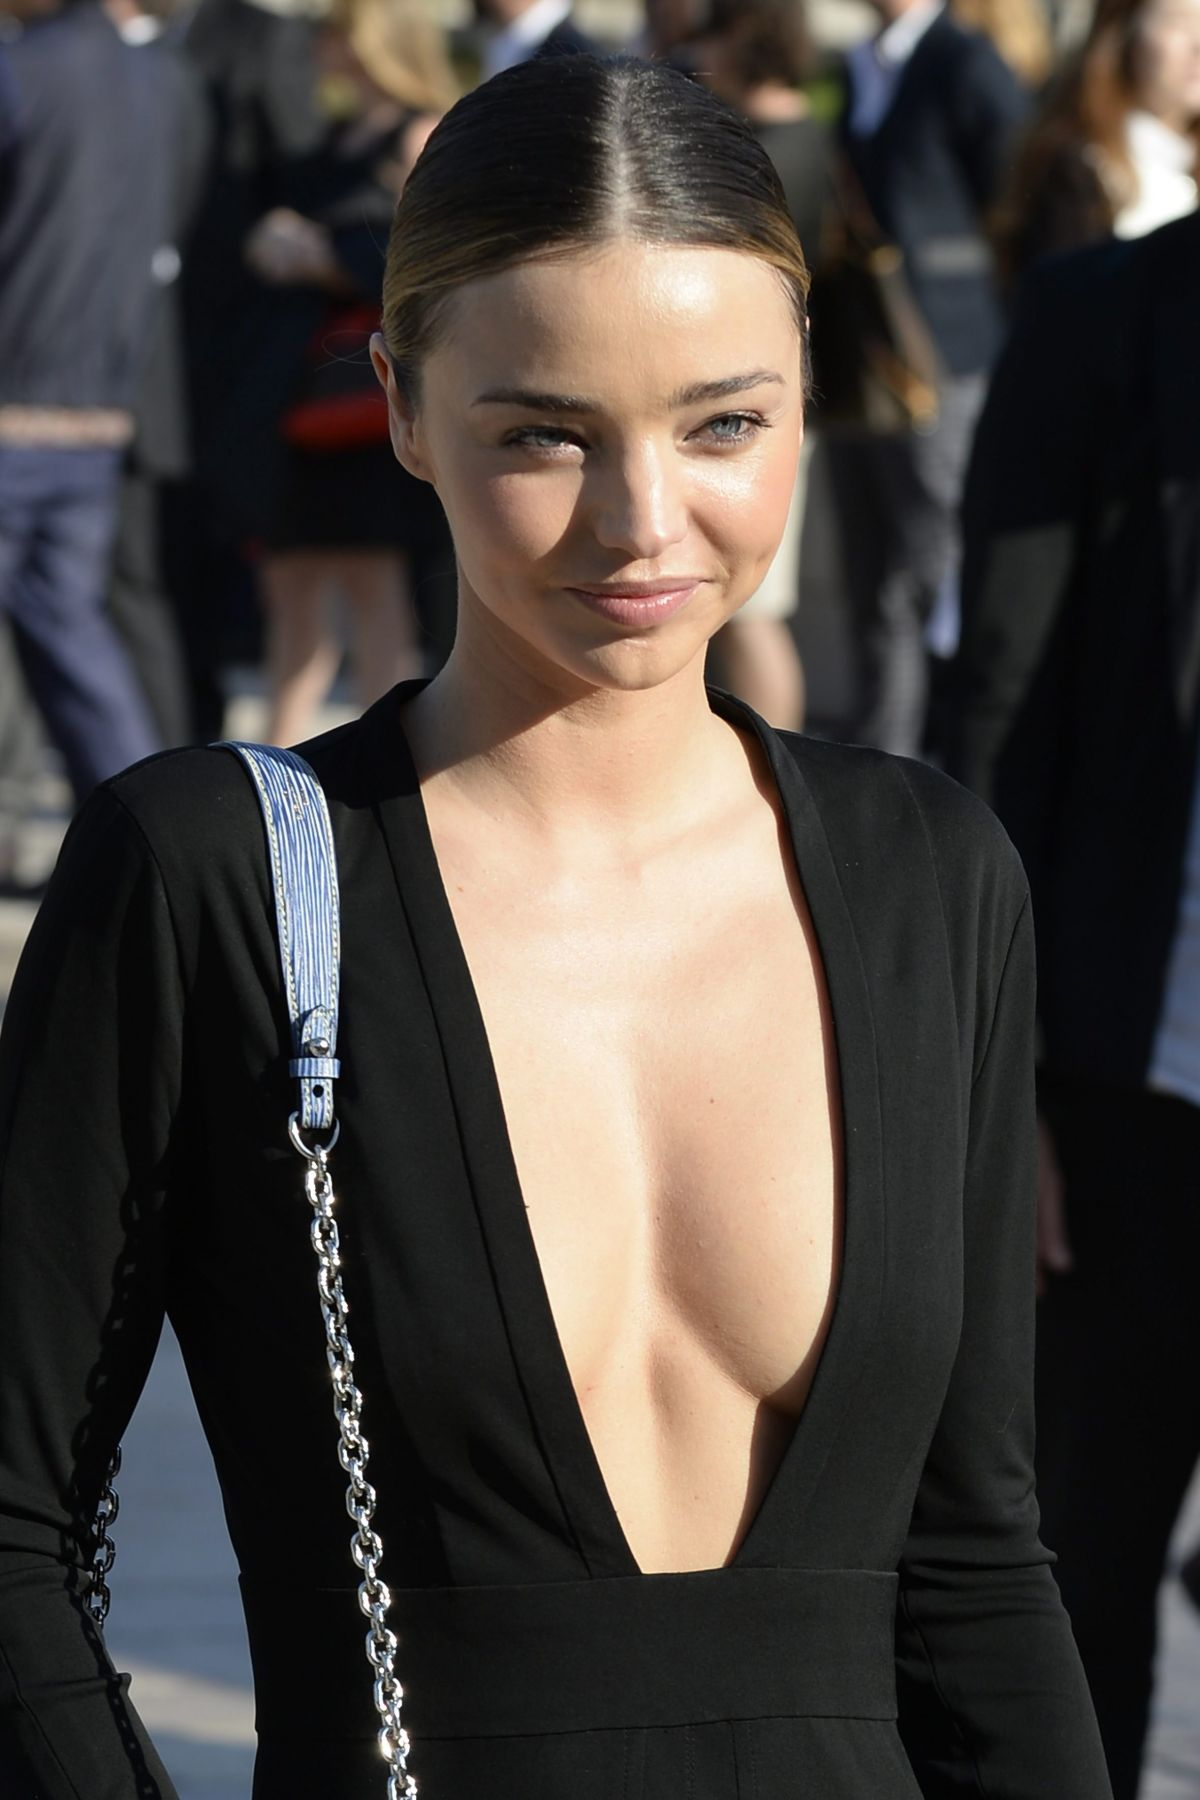 Miranda Kerr At Louis Vuitton Fashion Show In Paris